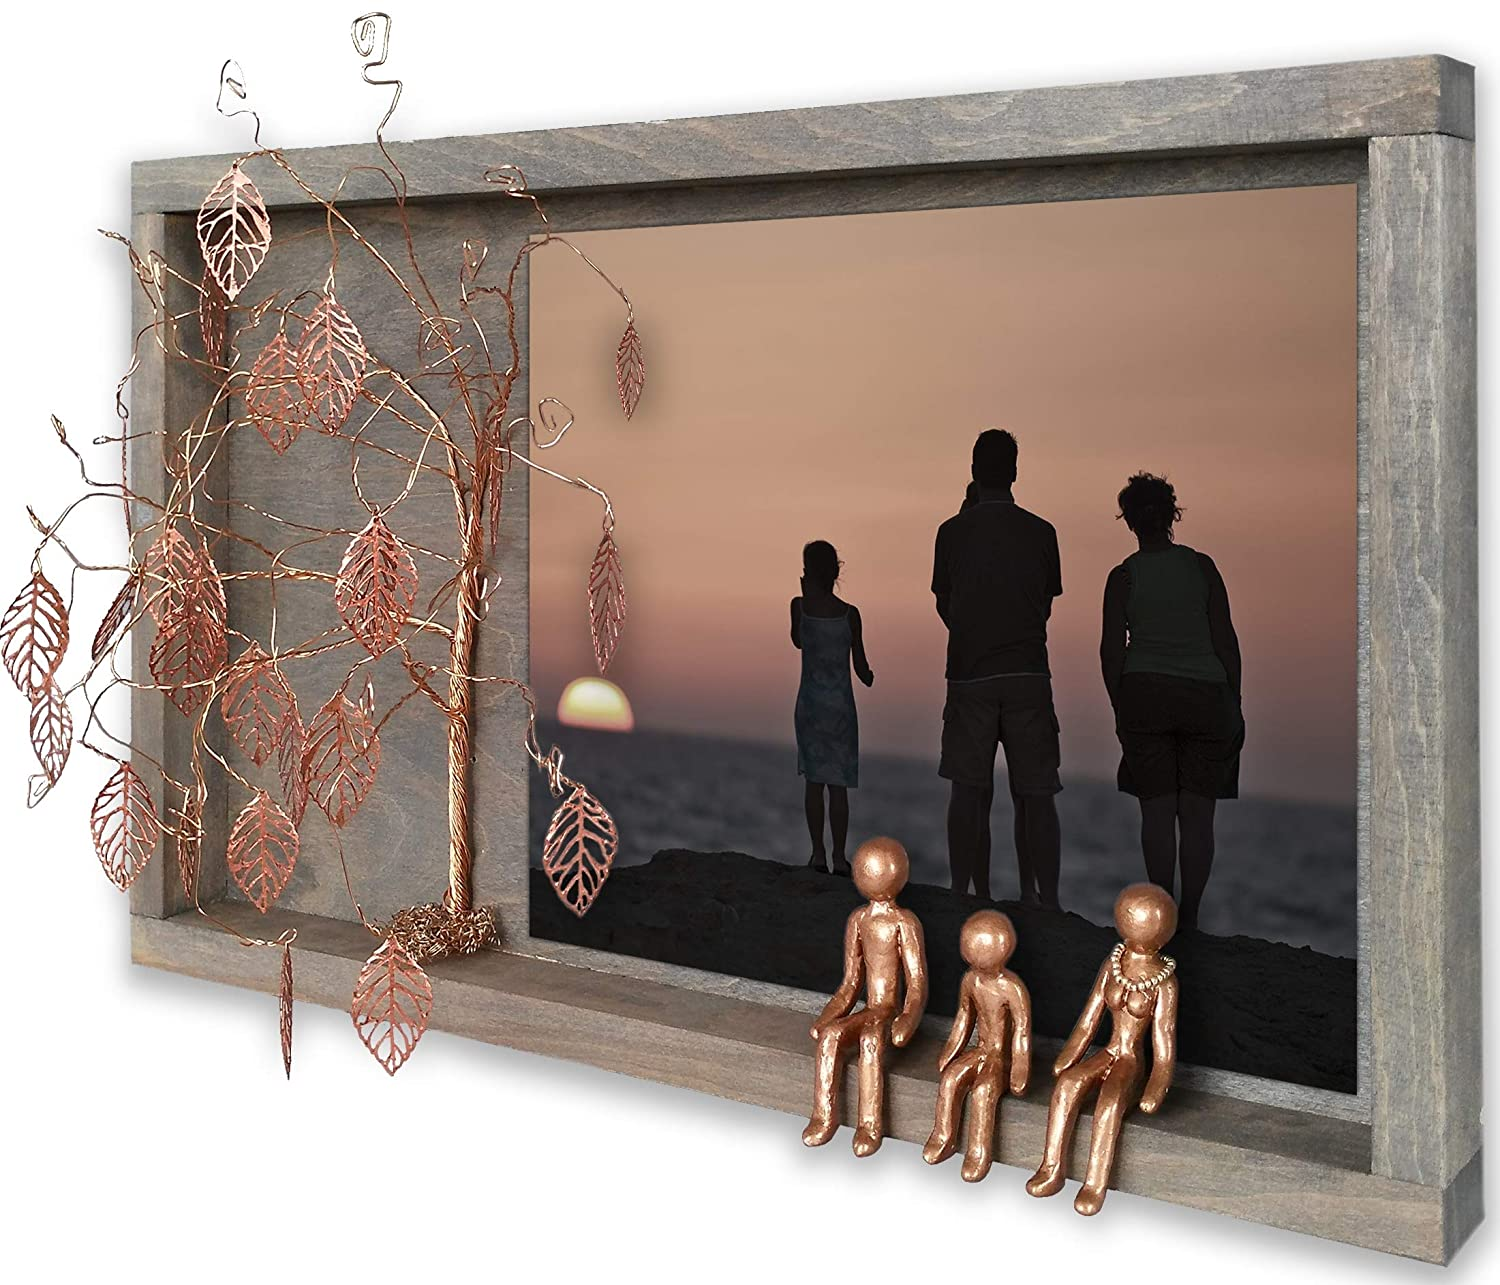 Gifts for Inlaws That Have Everything Family Picture Frame Collages for Wall 8th 19th Bronze Wedding Anniversary Grandma Willow Tree Family 4 Figurines 7 8 19 21th Year Wall Charmers Her Grandparents